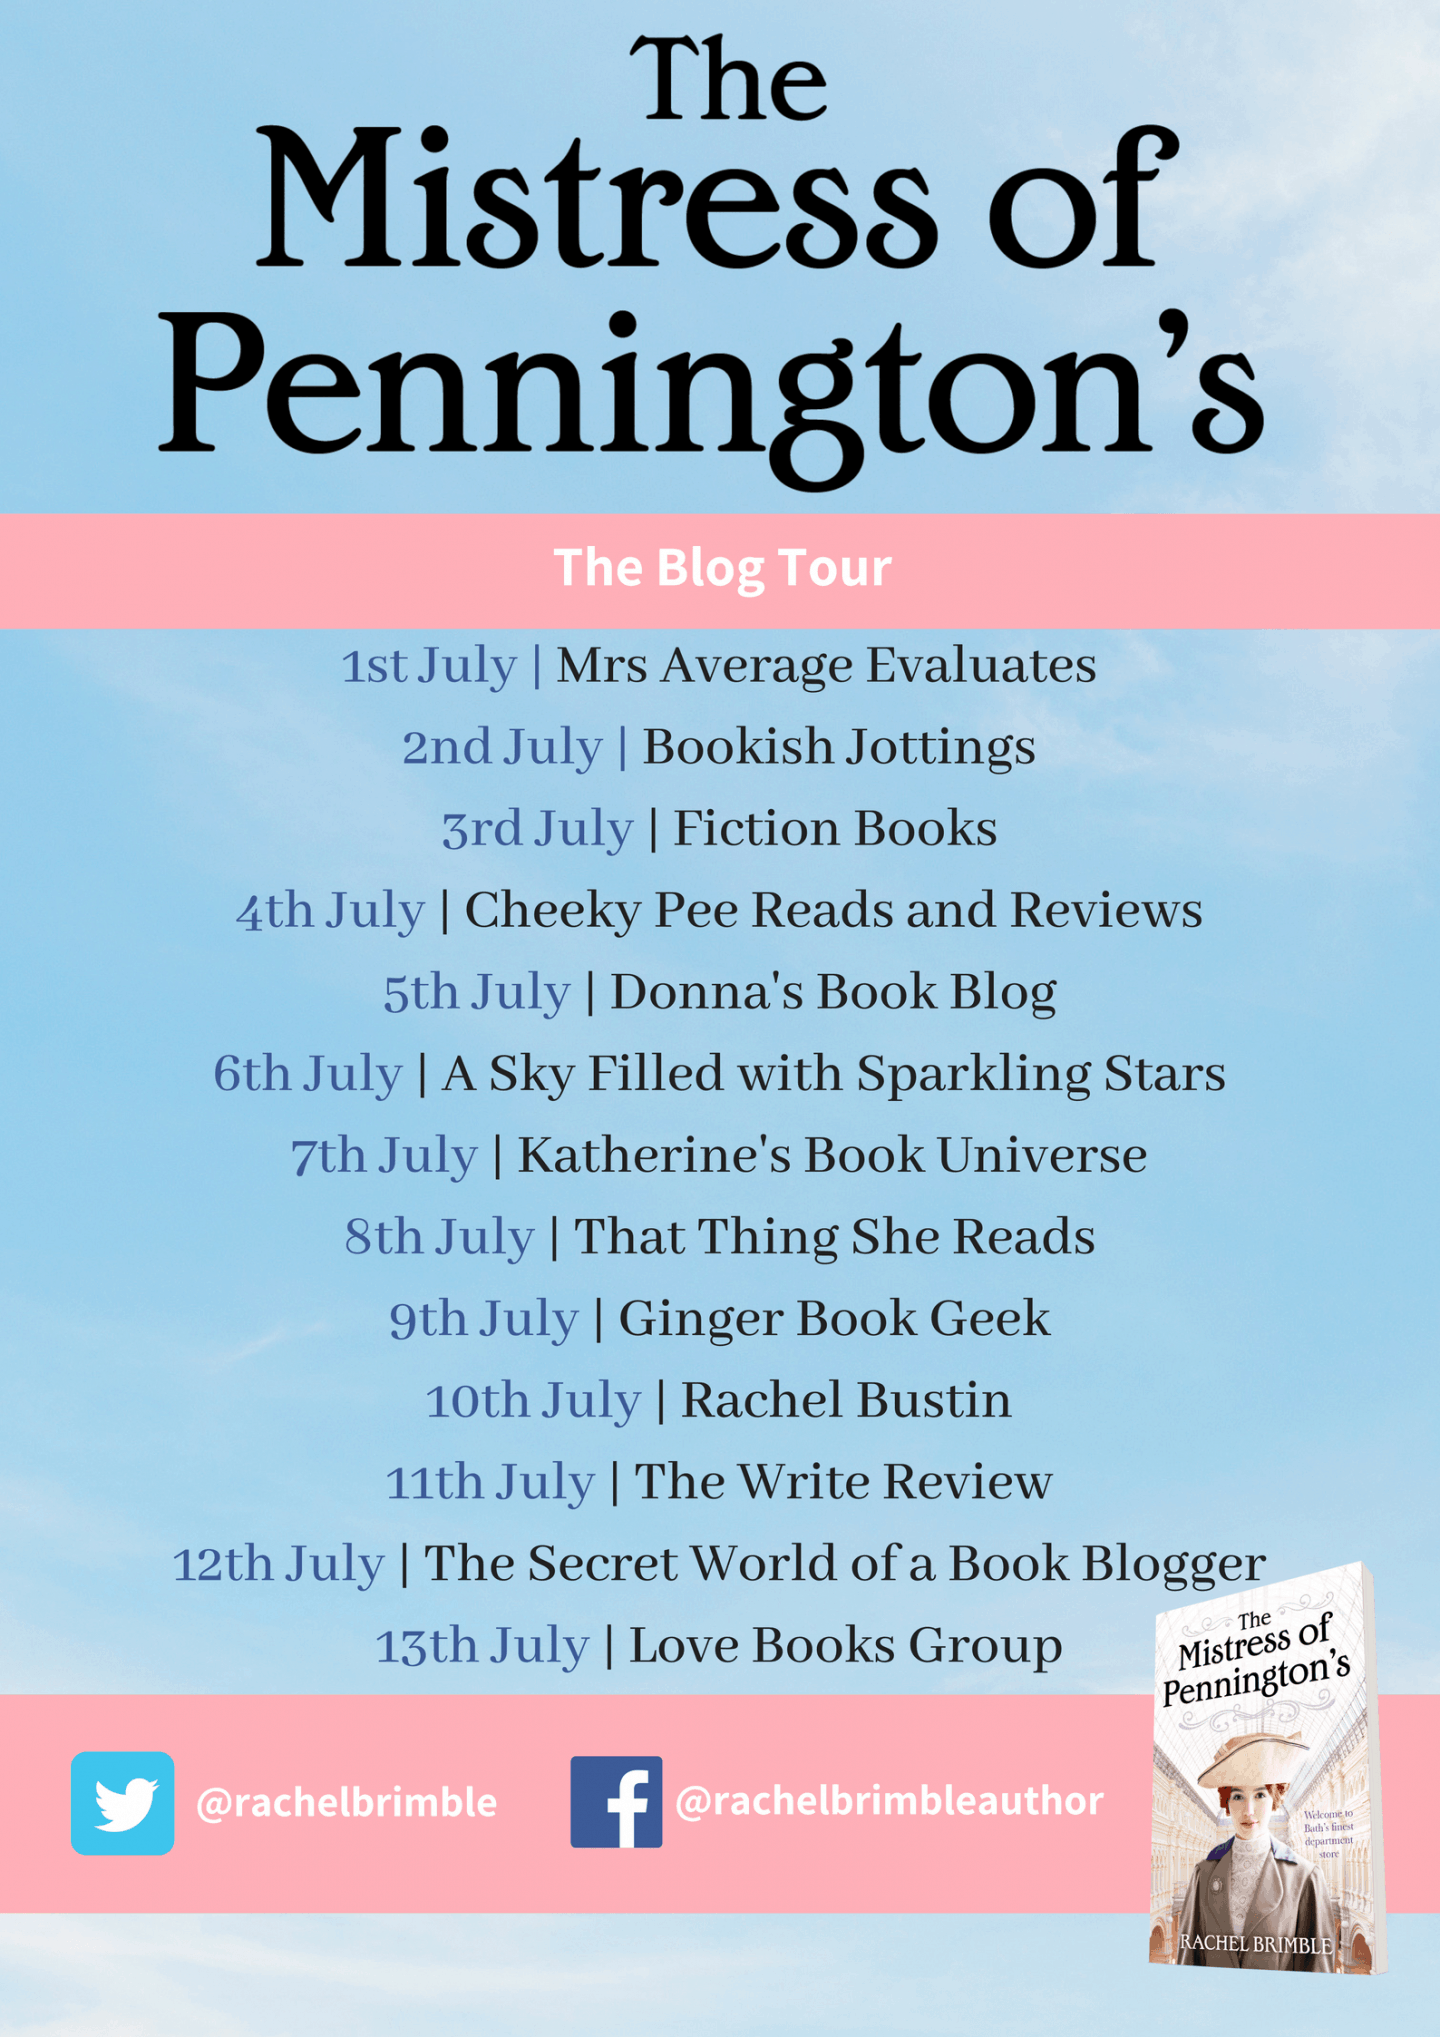 Rachel Brimble – The Mistress of Pennington's